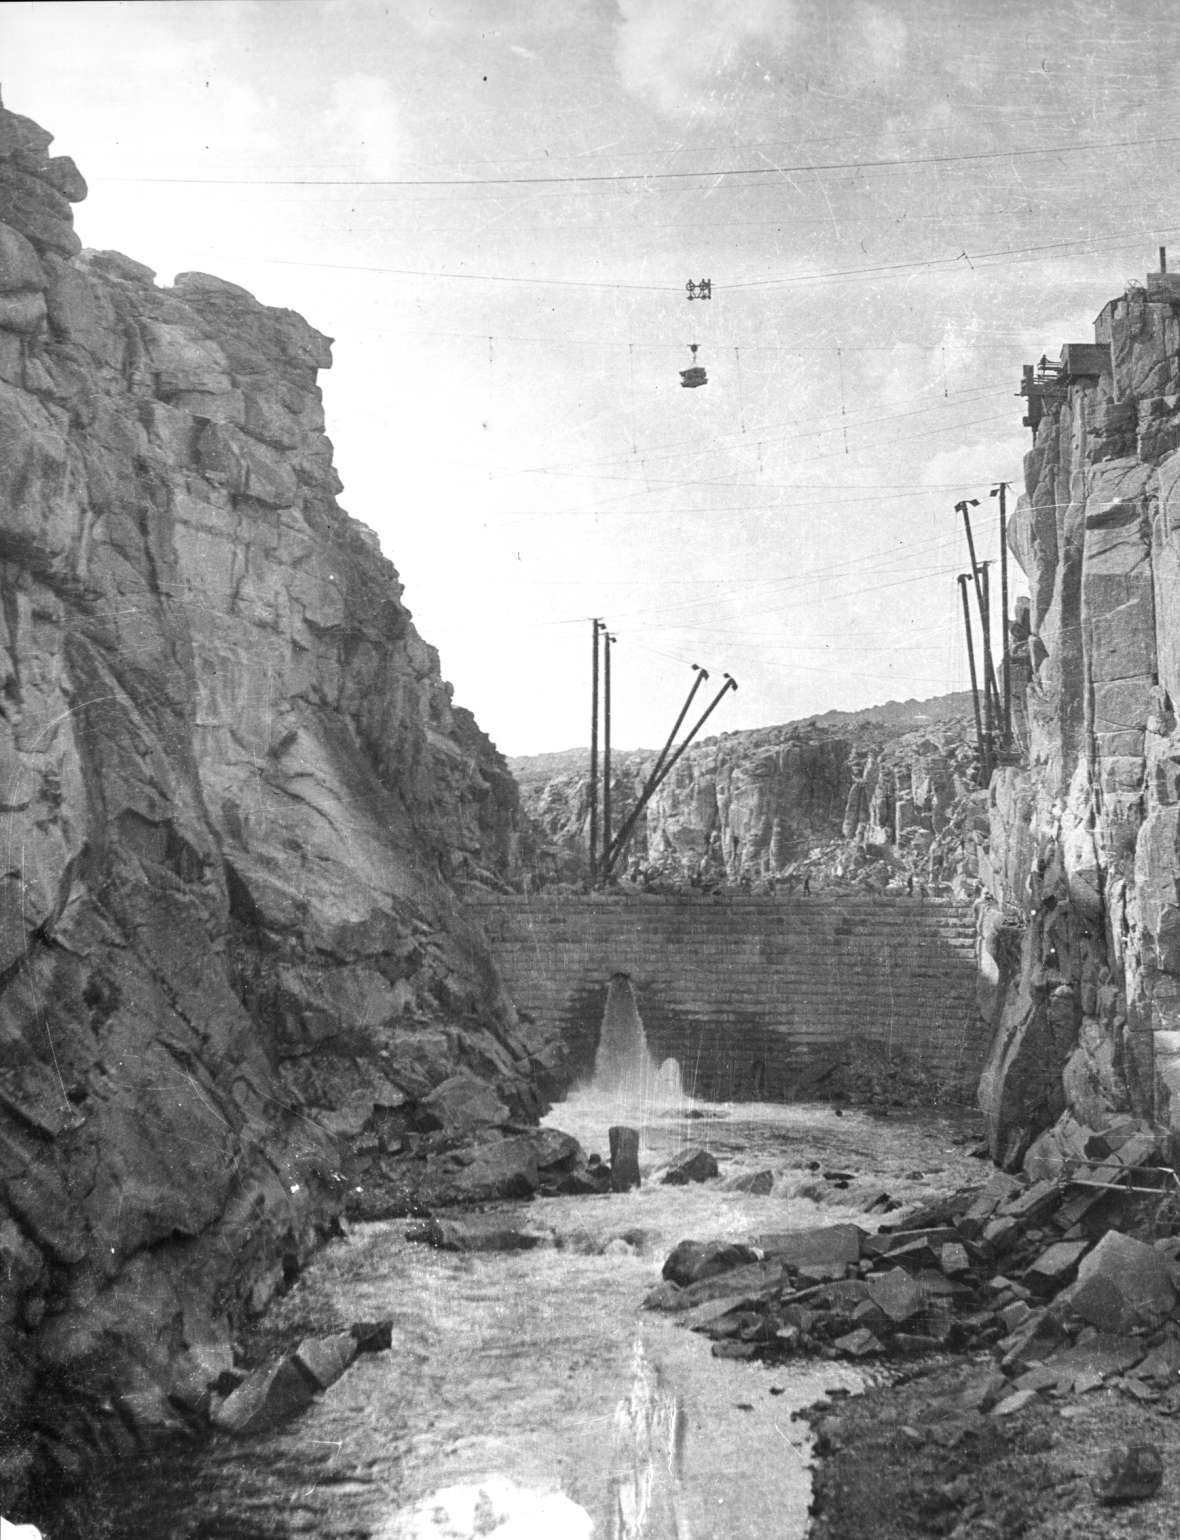 Pathfinder Dam on the North Platte River, under construction about 1906. Casper College Western History Center.